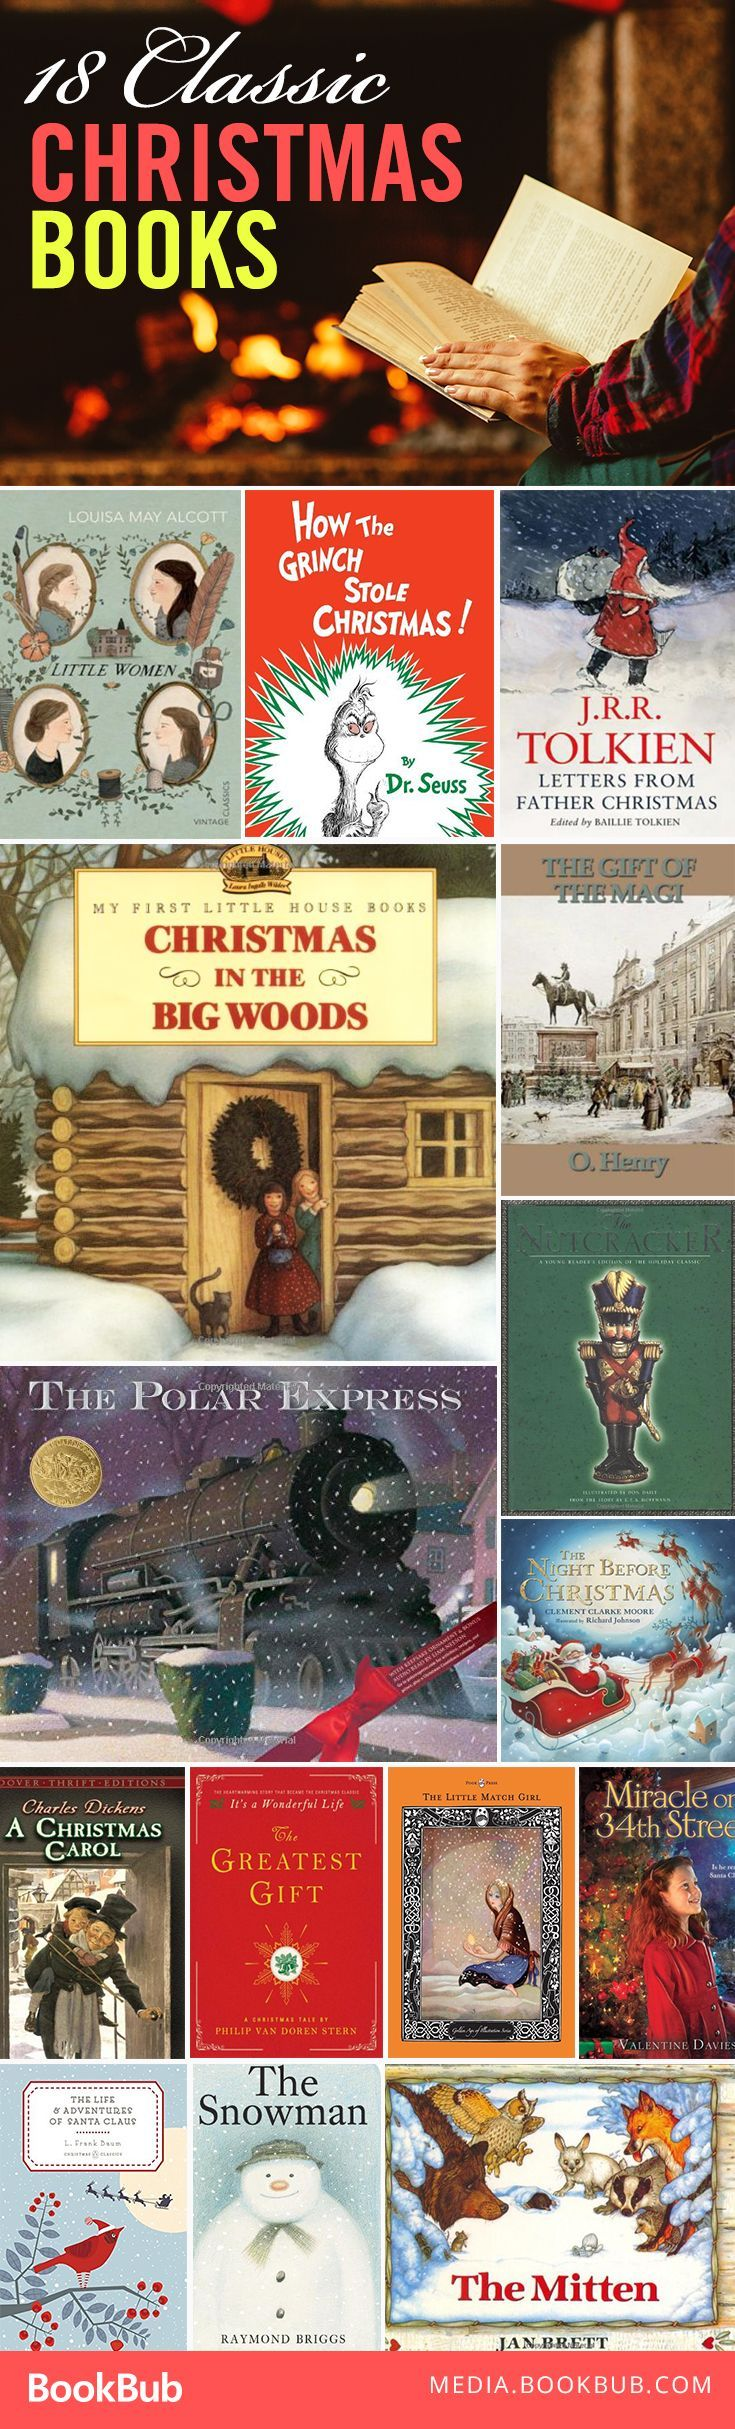 18 classic Christmas stories to cozy up and read this holiday season. 18xmas